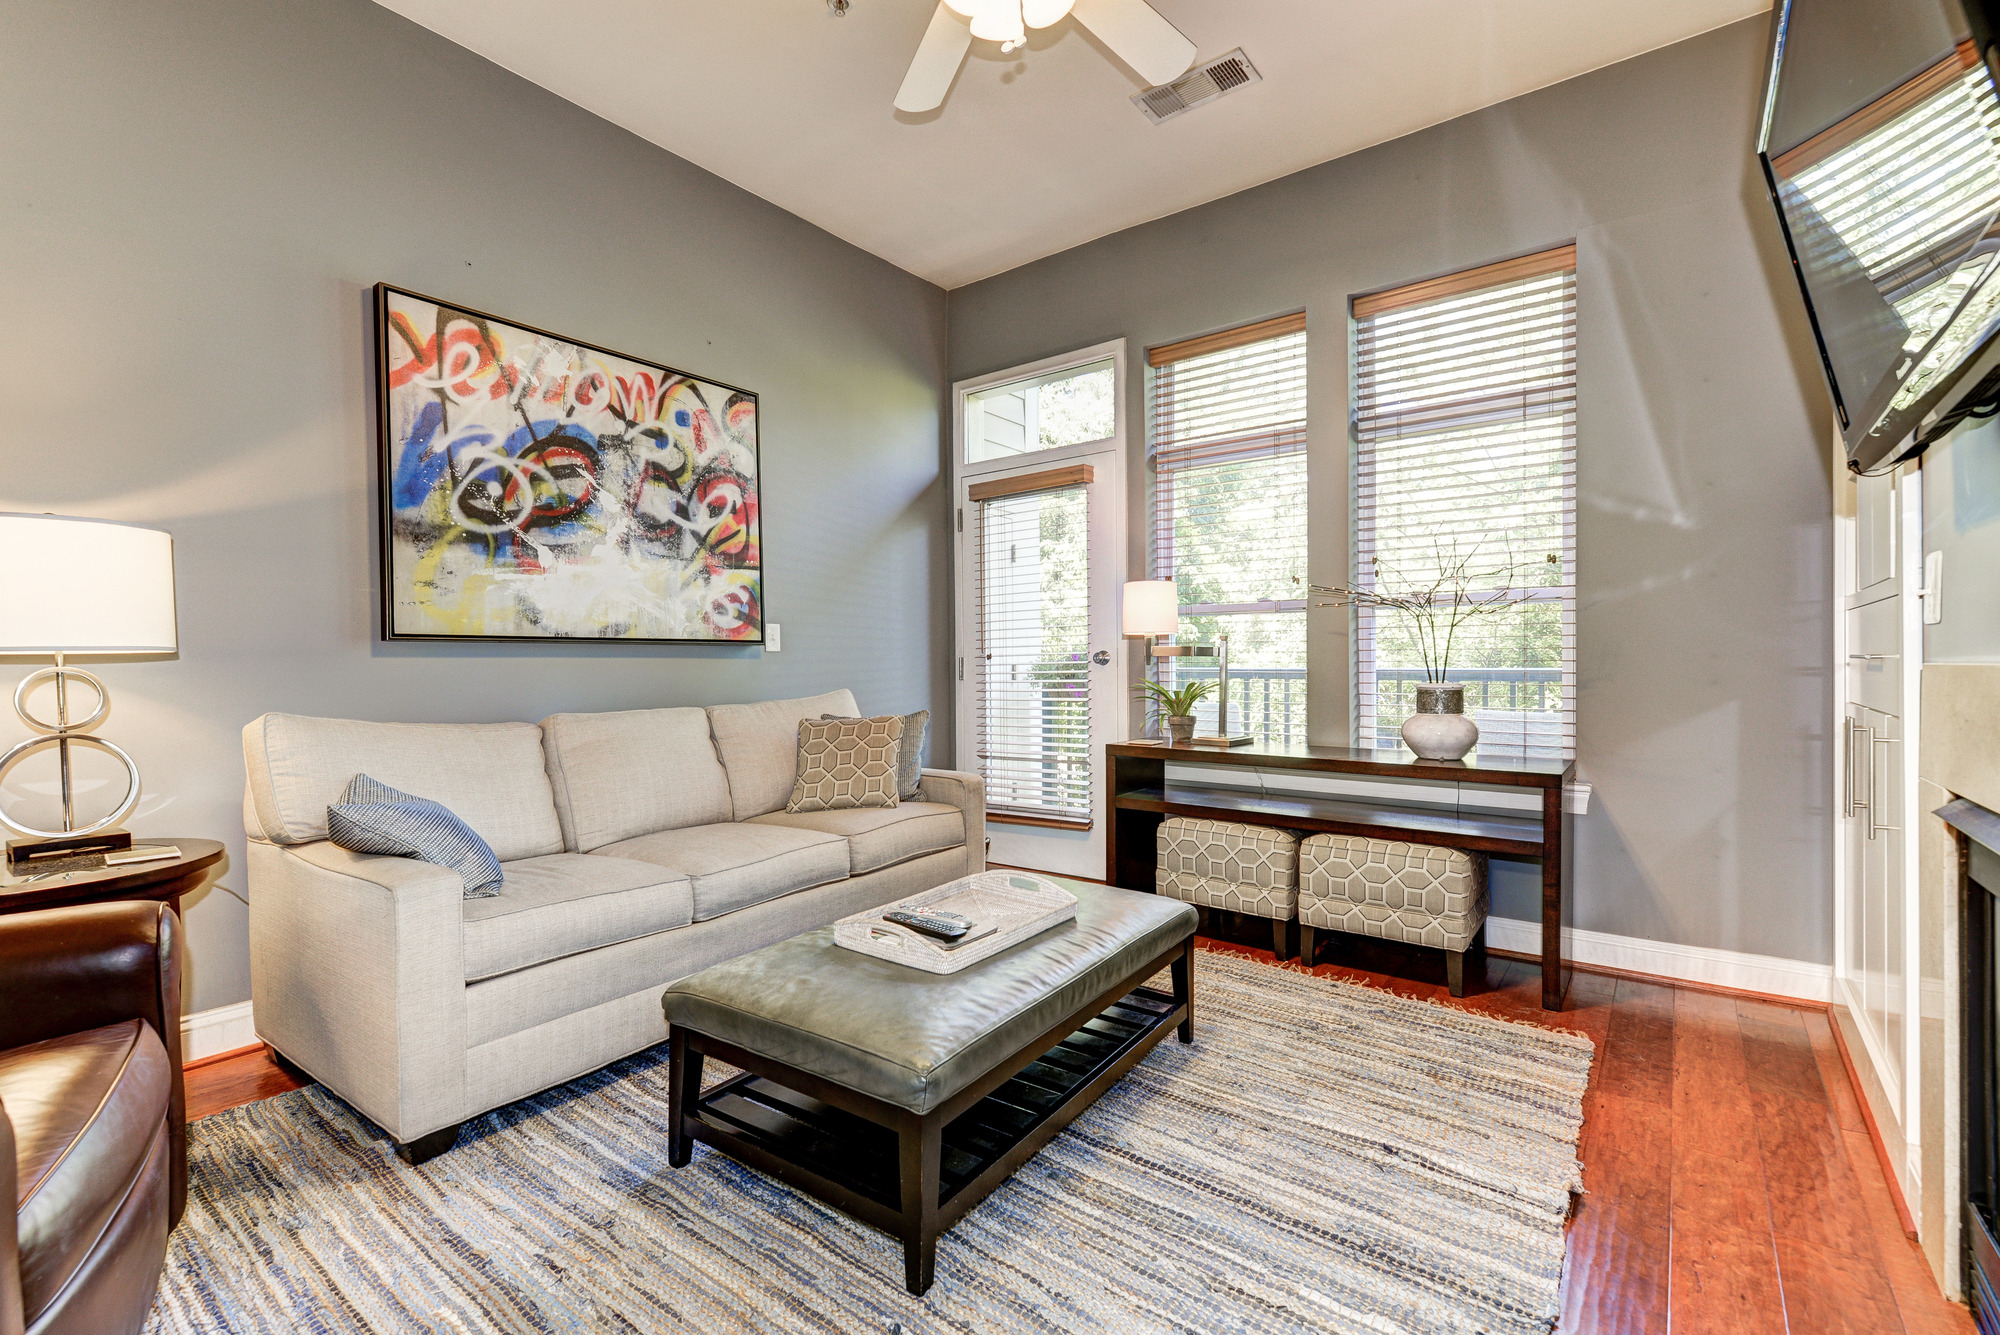 Homevisit virtual tour 1633 colonial ter 105 arlington for 1633 colonial terrace arlington va